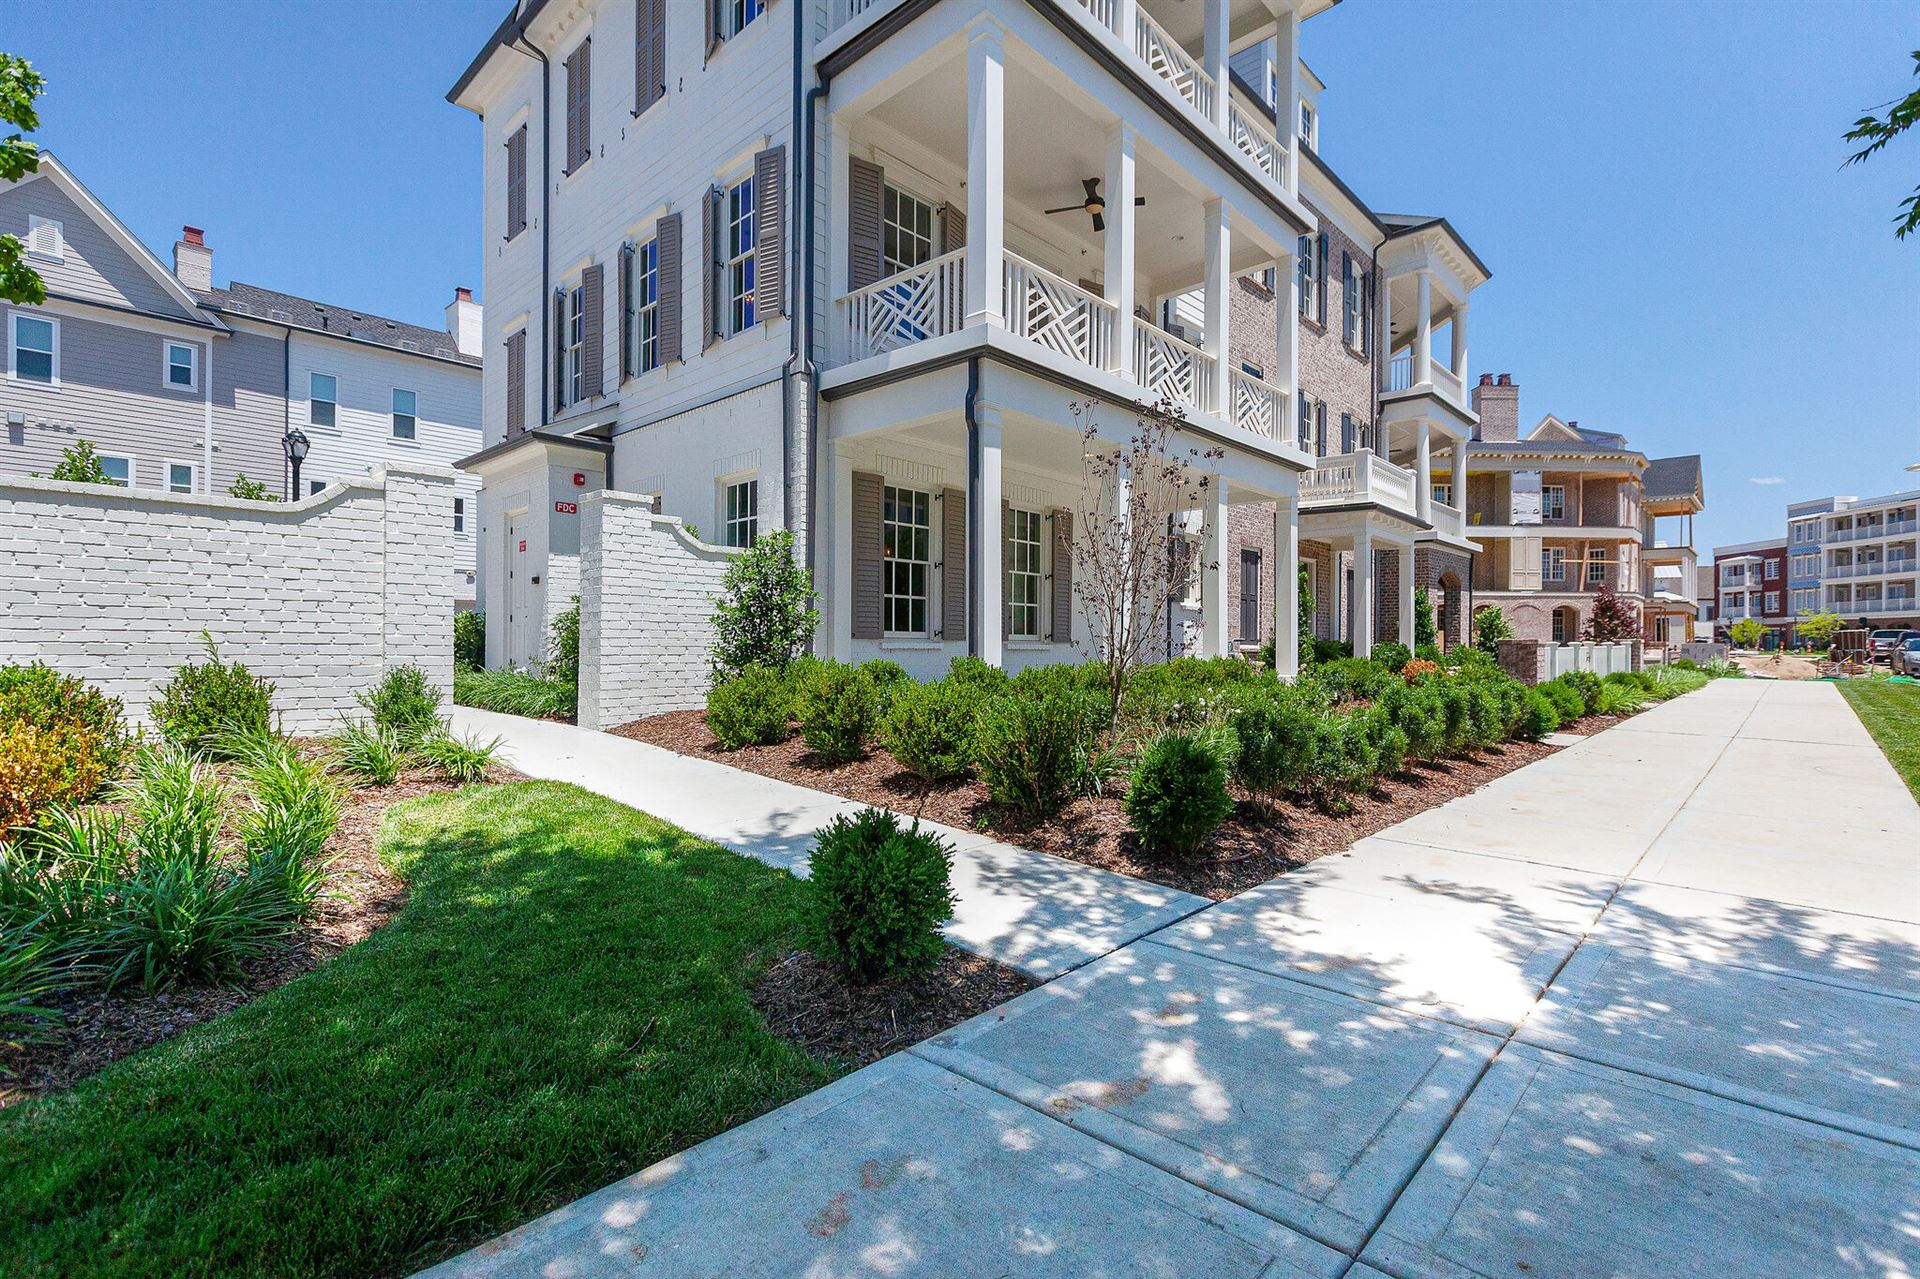 Photo of 101 Front Street, WH # 4061, Franklin, TN 37064 (MLS # 2073933)